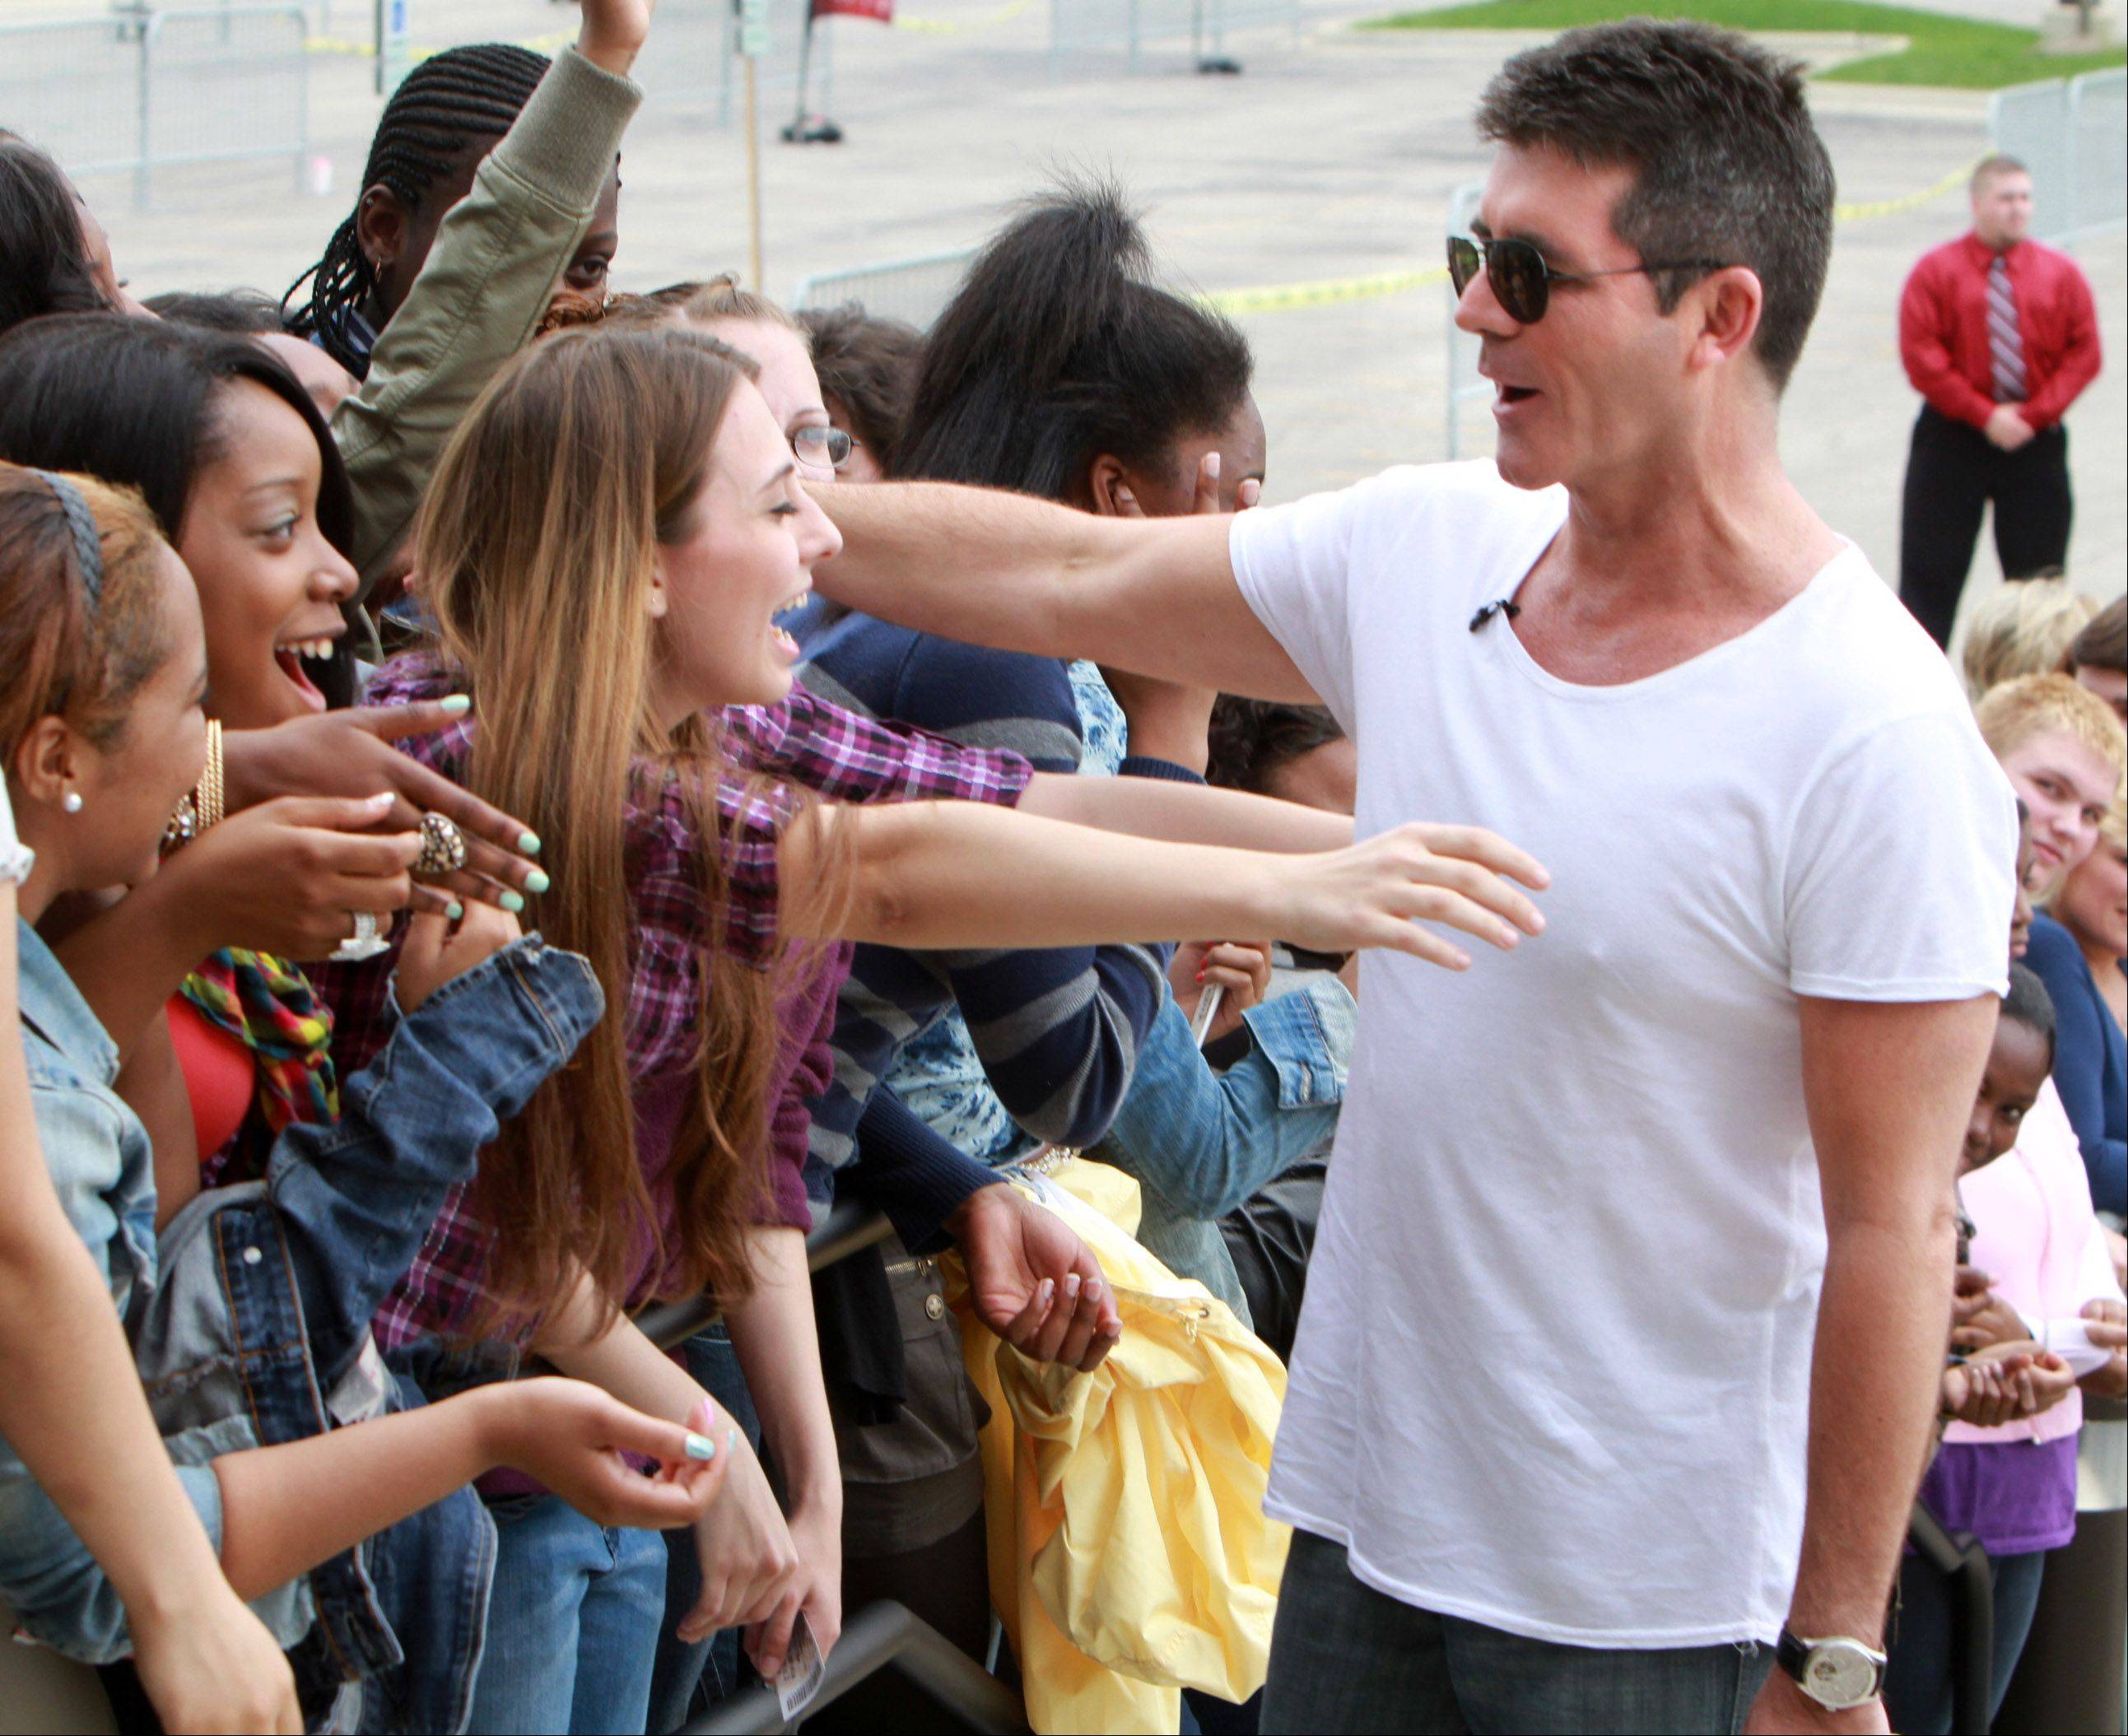 Images: Simon, Paula and the X Factor auditions in Hoffman Estates